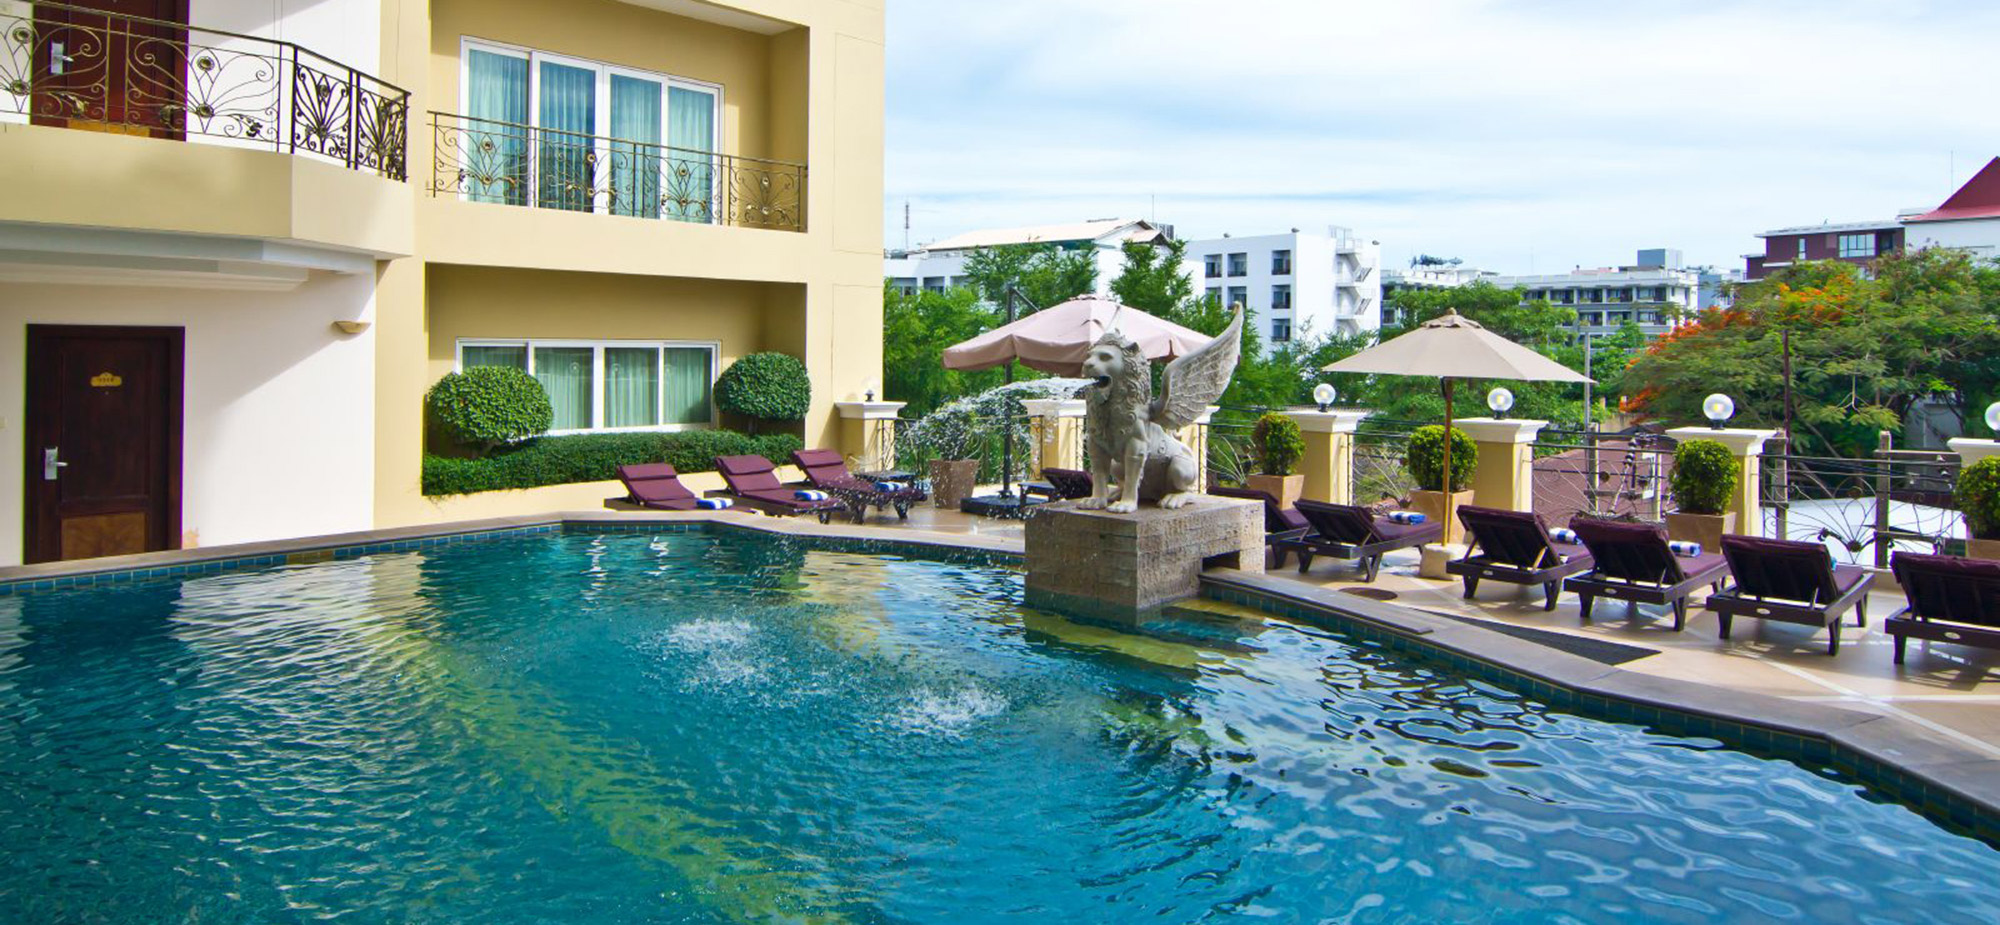 Lk Residence Lk Group Pattaya Hotels Welcome To Lk Group